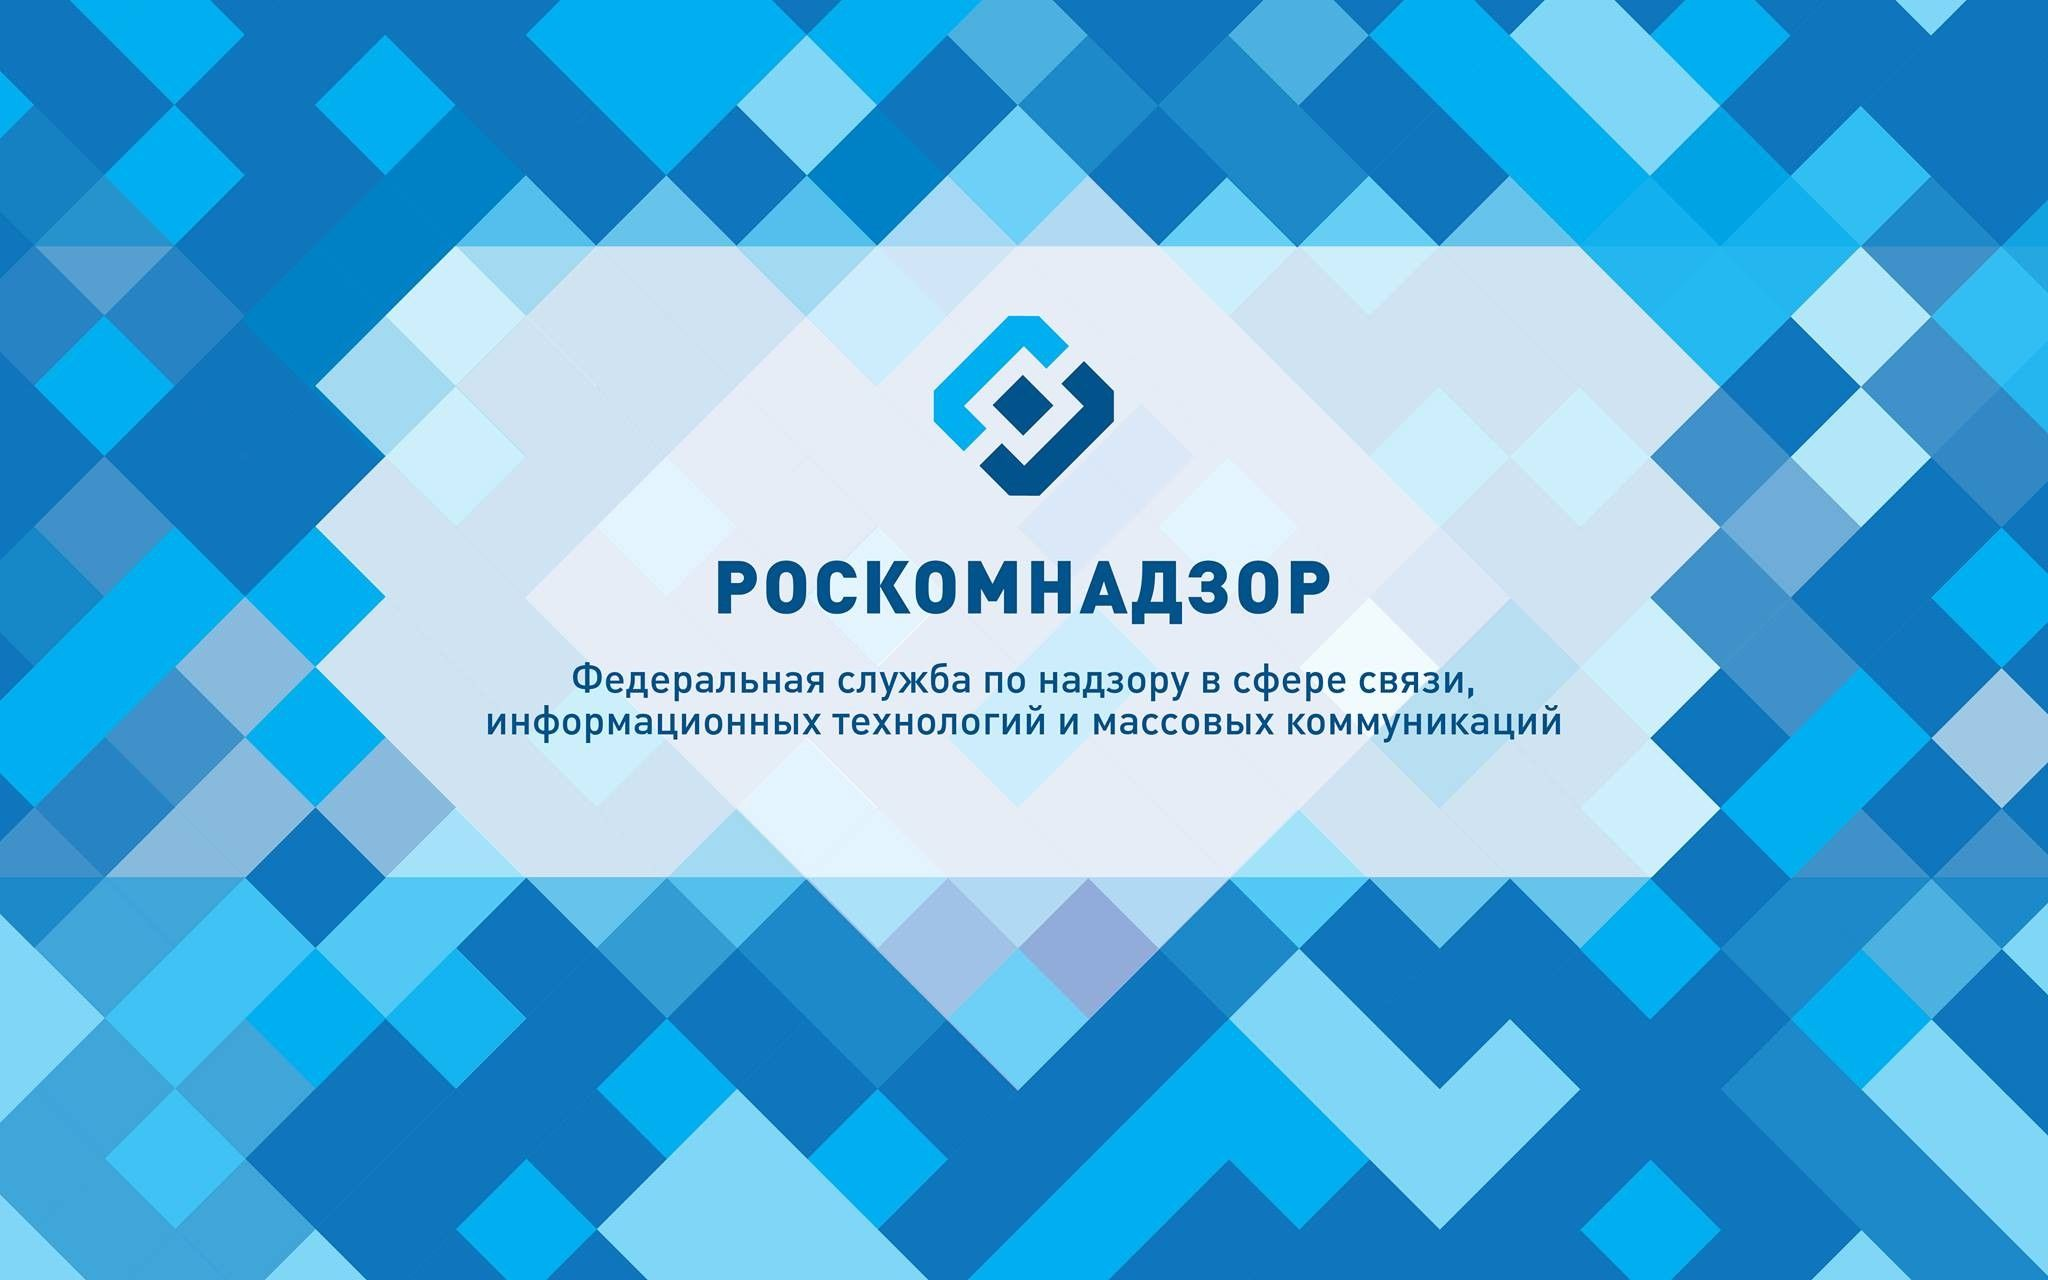 http://pd.rkn.gov.ru/multimedia/video114.htm